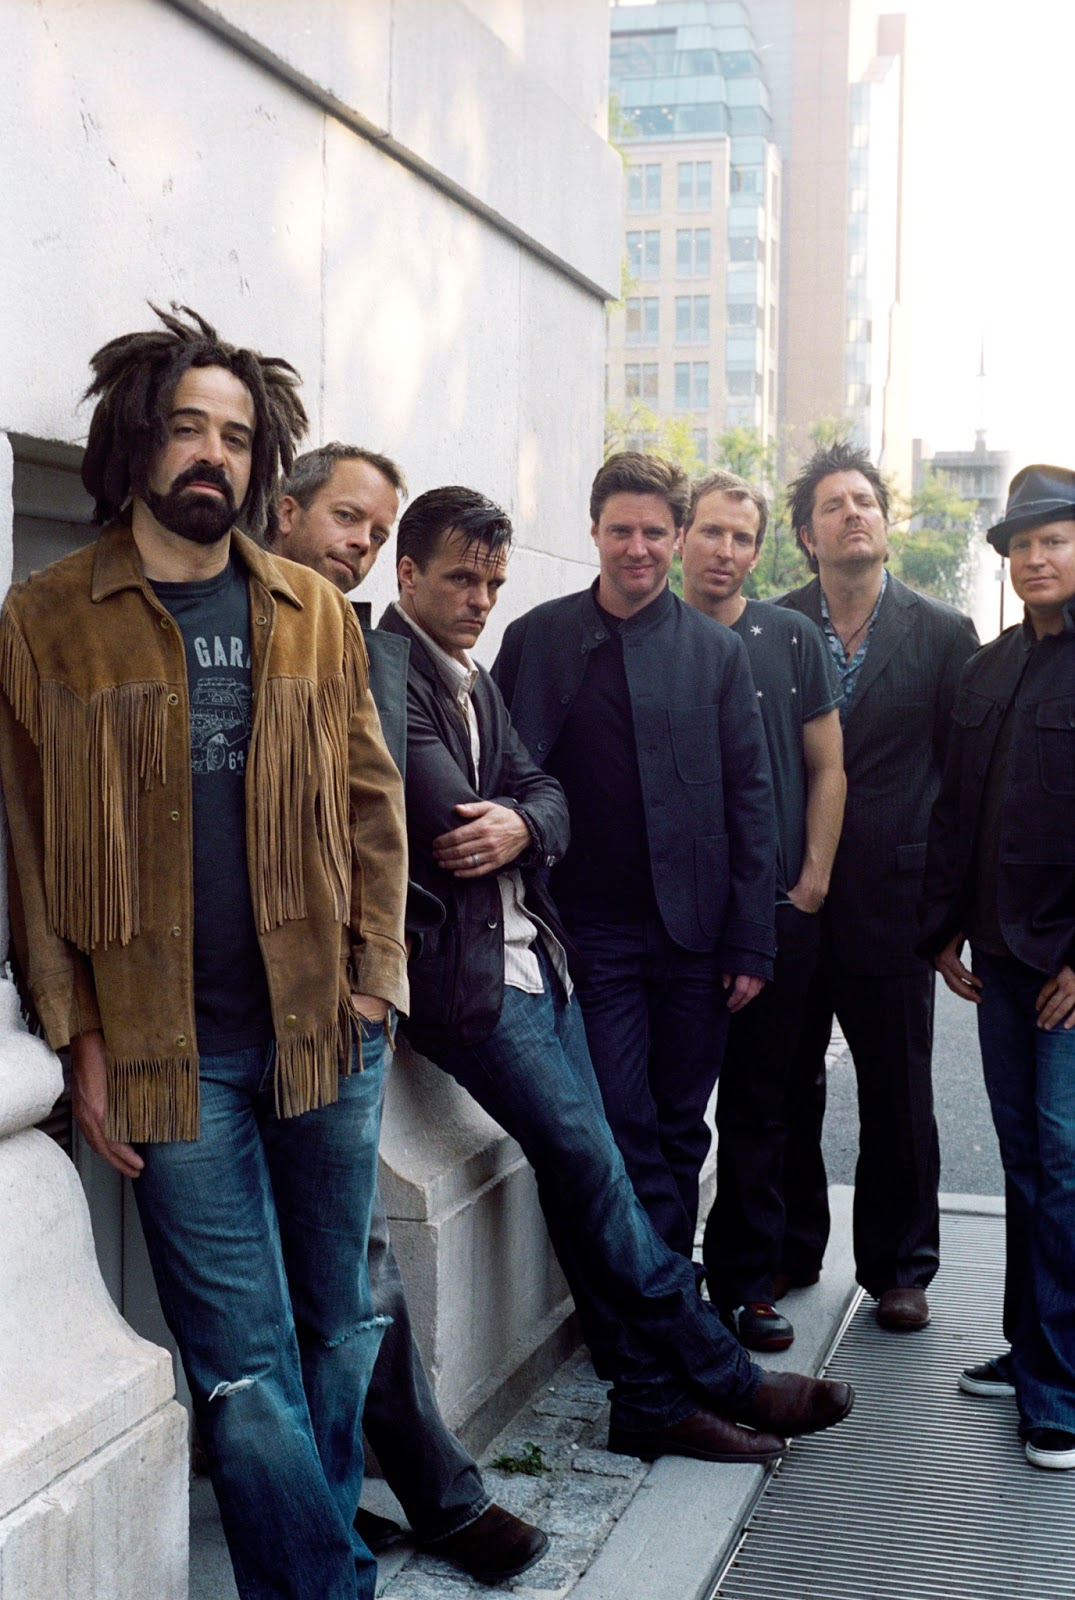 http://4.bp.blogspot.com/-FlX6mts4WtY/UP7fNrYLq6I/AAAAAAAANdk/D3LsPkq0ELw/s1600/Counting+Crows.jpg